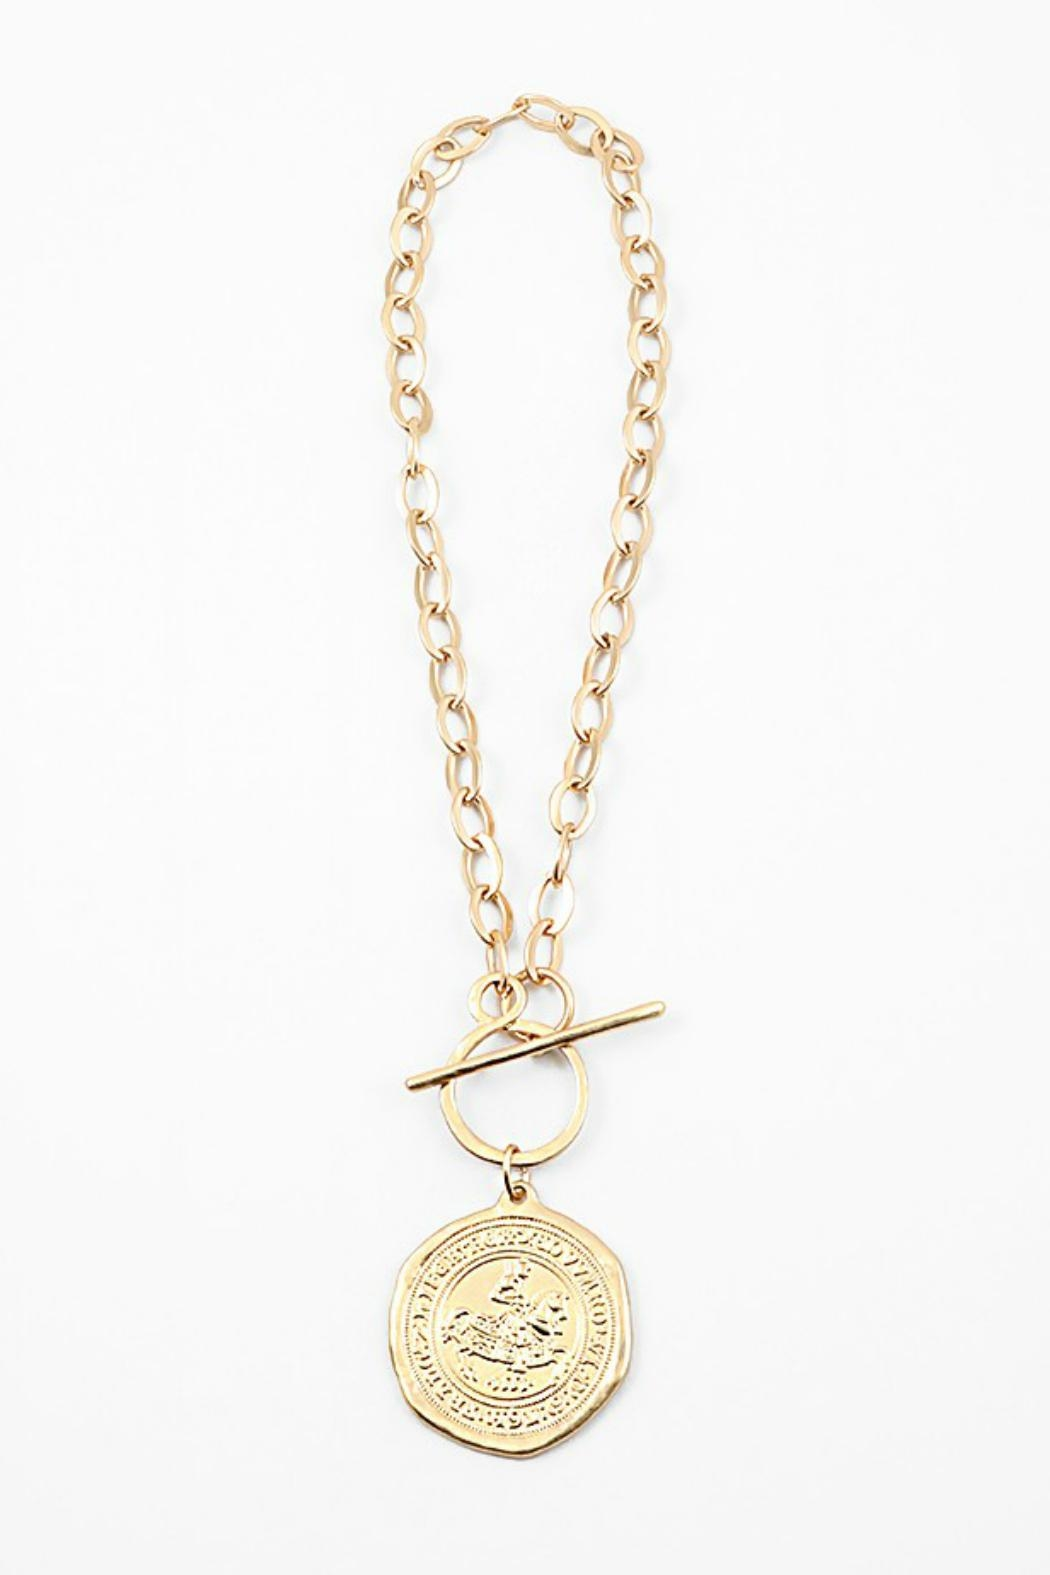 yiwuproducts bib coin necklace plate wholesale gold golden vintage trendy